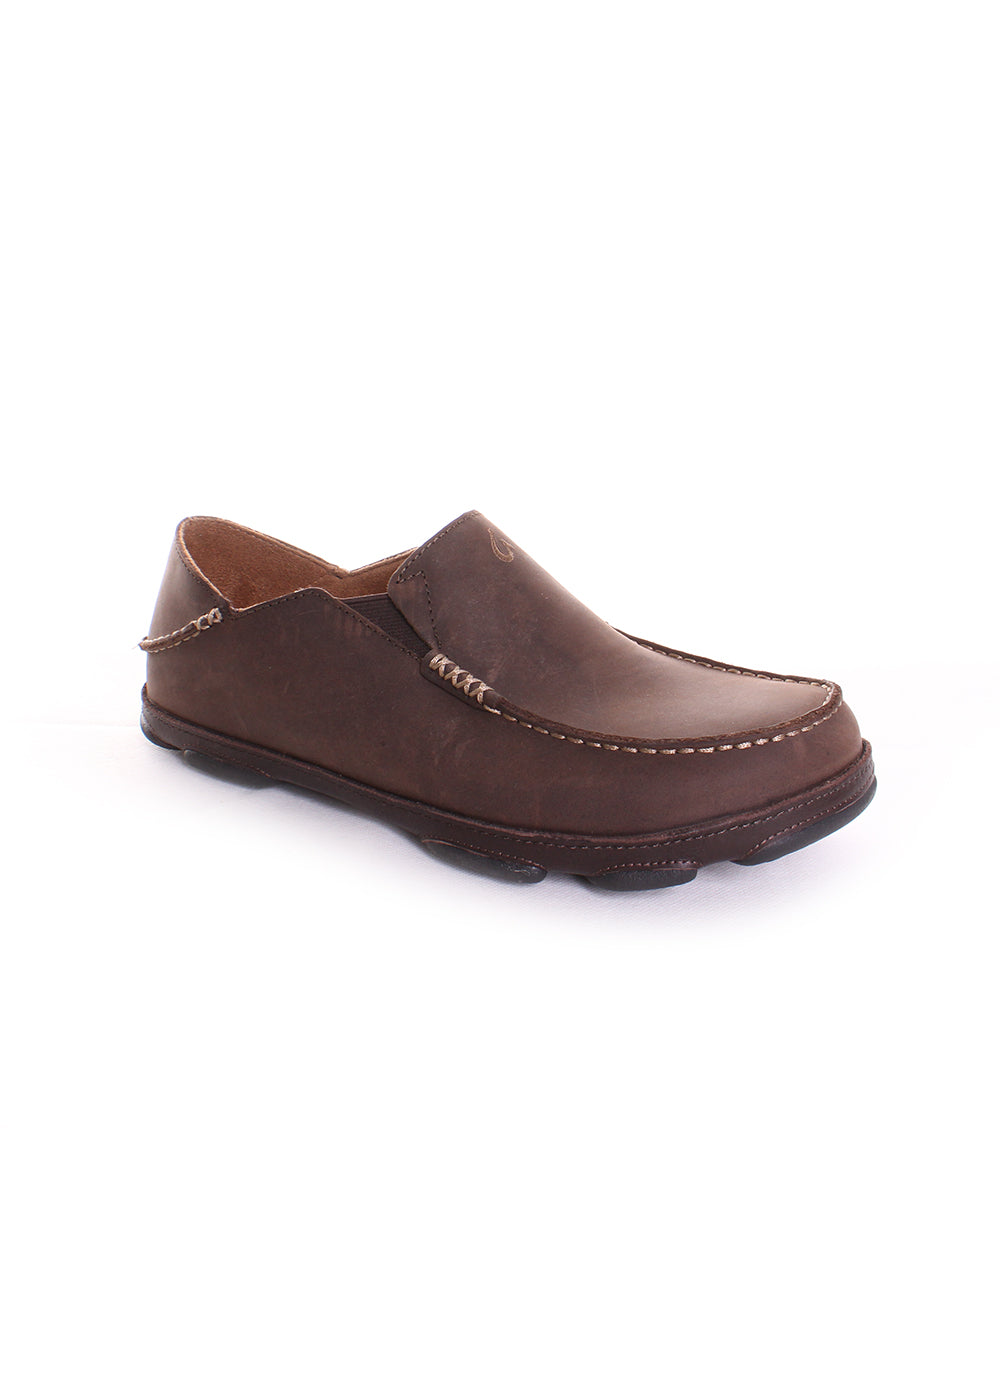 OluKai Moloa Men's Shoe in Dark Wood/Dark Java